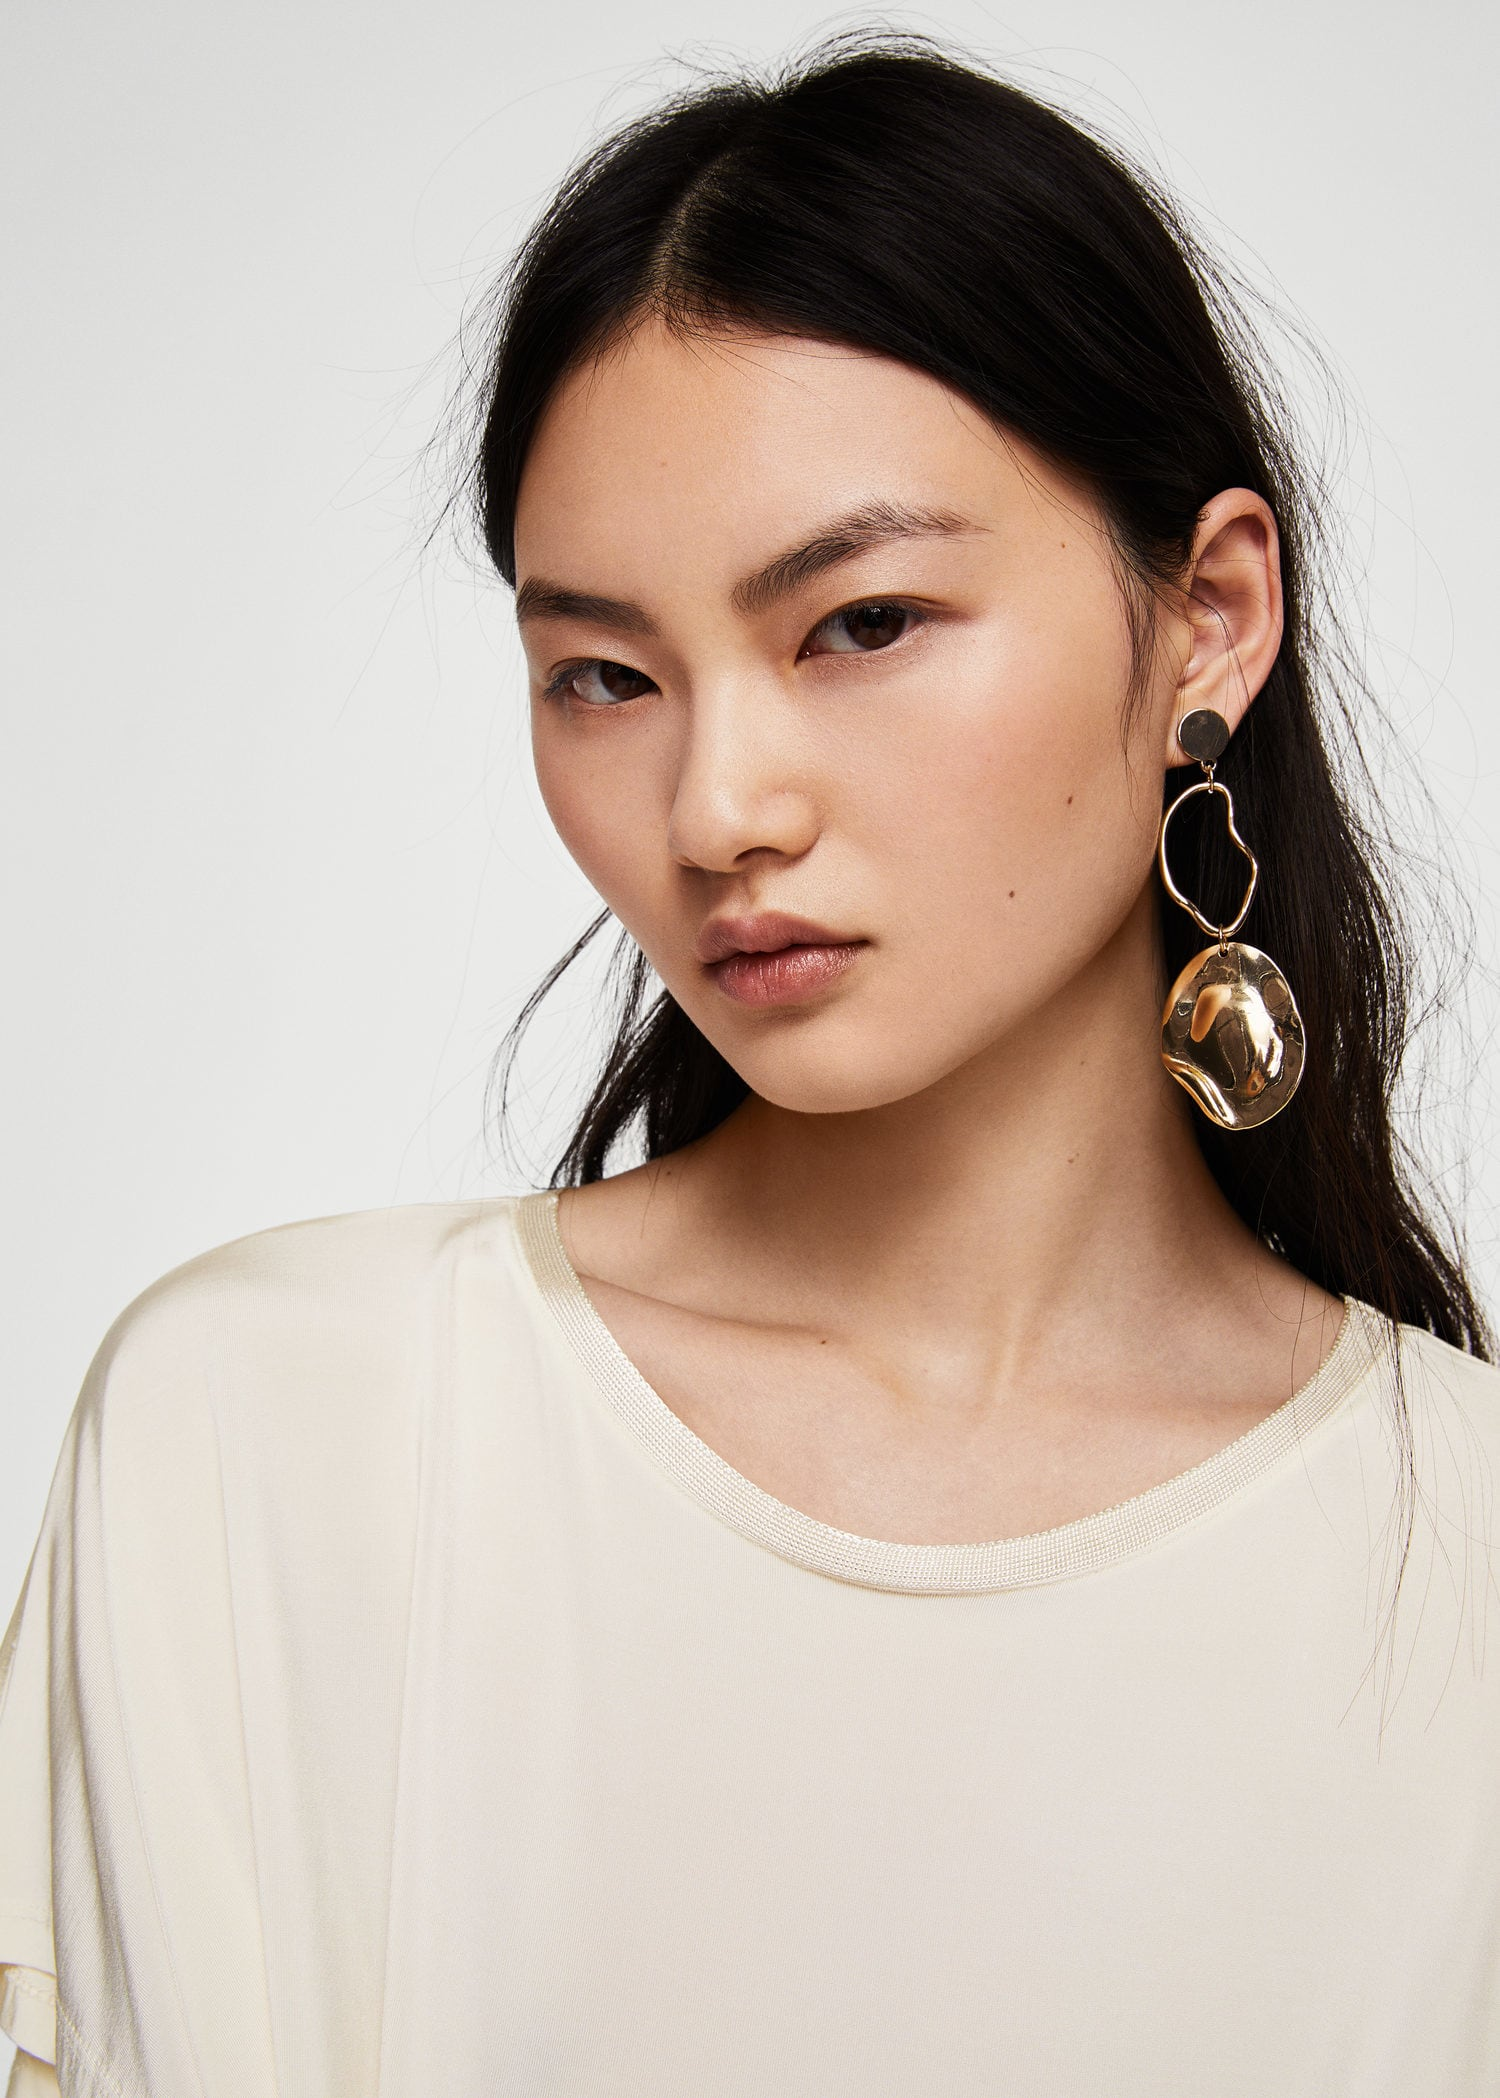 Metallic Hoop Earrings - £12.99, MangoI'm not huge on jewellery, but my ethos is normally go big or go home - and these asymmetrical earrings from Mango definitely fit the bill. Mango's been killing the accessory game recently and these big dangling knockouts only reaffirm it.I'd probably wear these with a relatively minimal outfit and strike out all the other accessories. These are such statement pieces that you gotta give them their time in the sun.